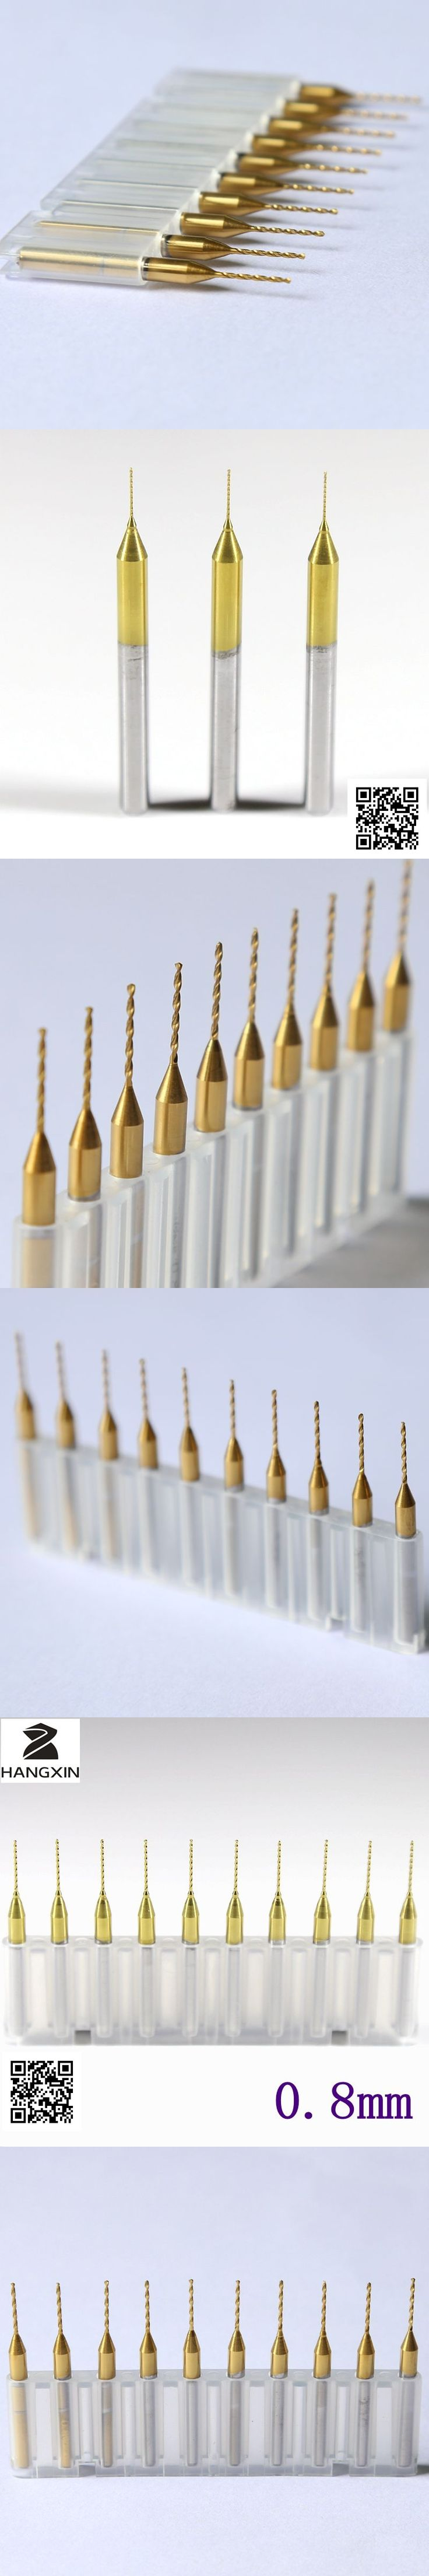 Titanium coated PCB drill, 3.175mm * 0.8mm Drill tool, 10PCS Printed circuit board Mini engraved metal, CNC router, Woodworking